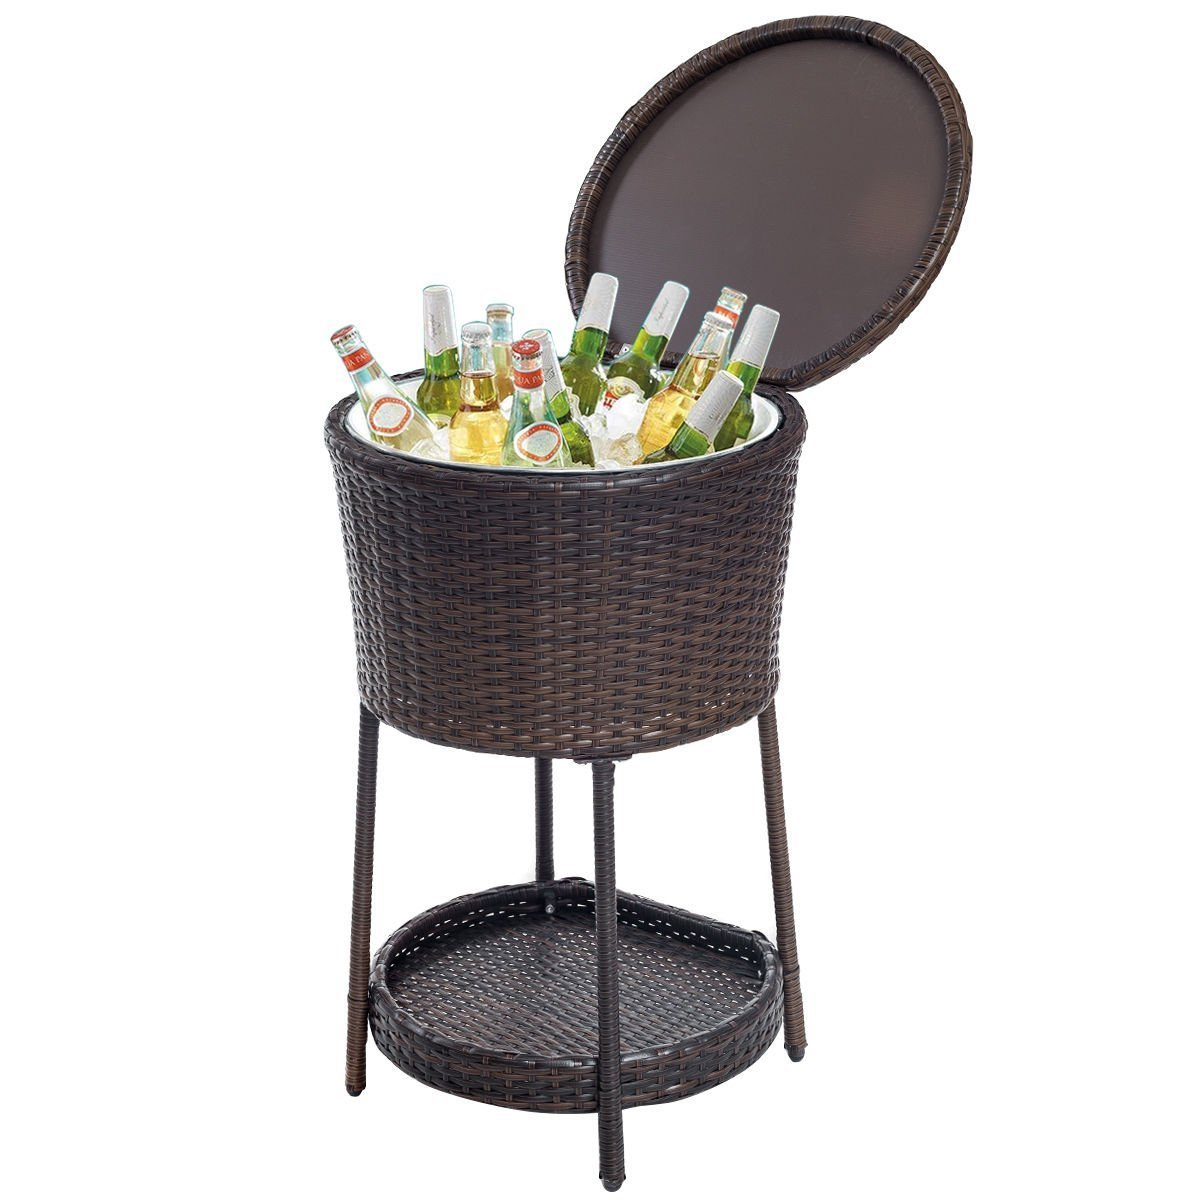 Giantex Rattan Ice Bucket Bar Table Cooler Patio Wicker Furniture, All-Weather Beverage Cooler with Tray